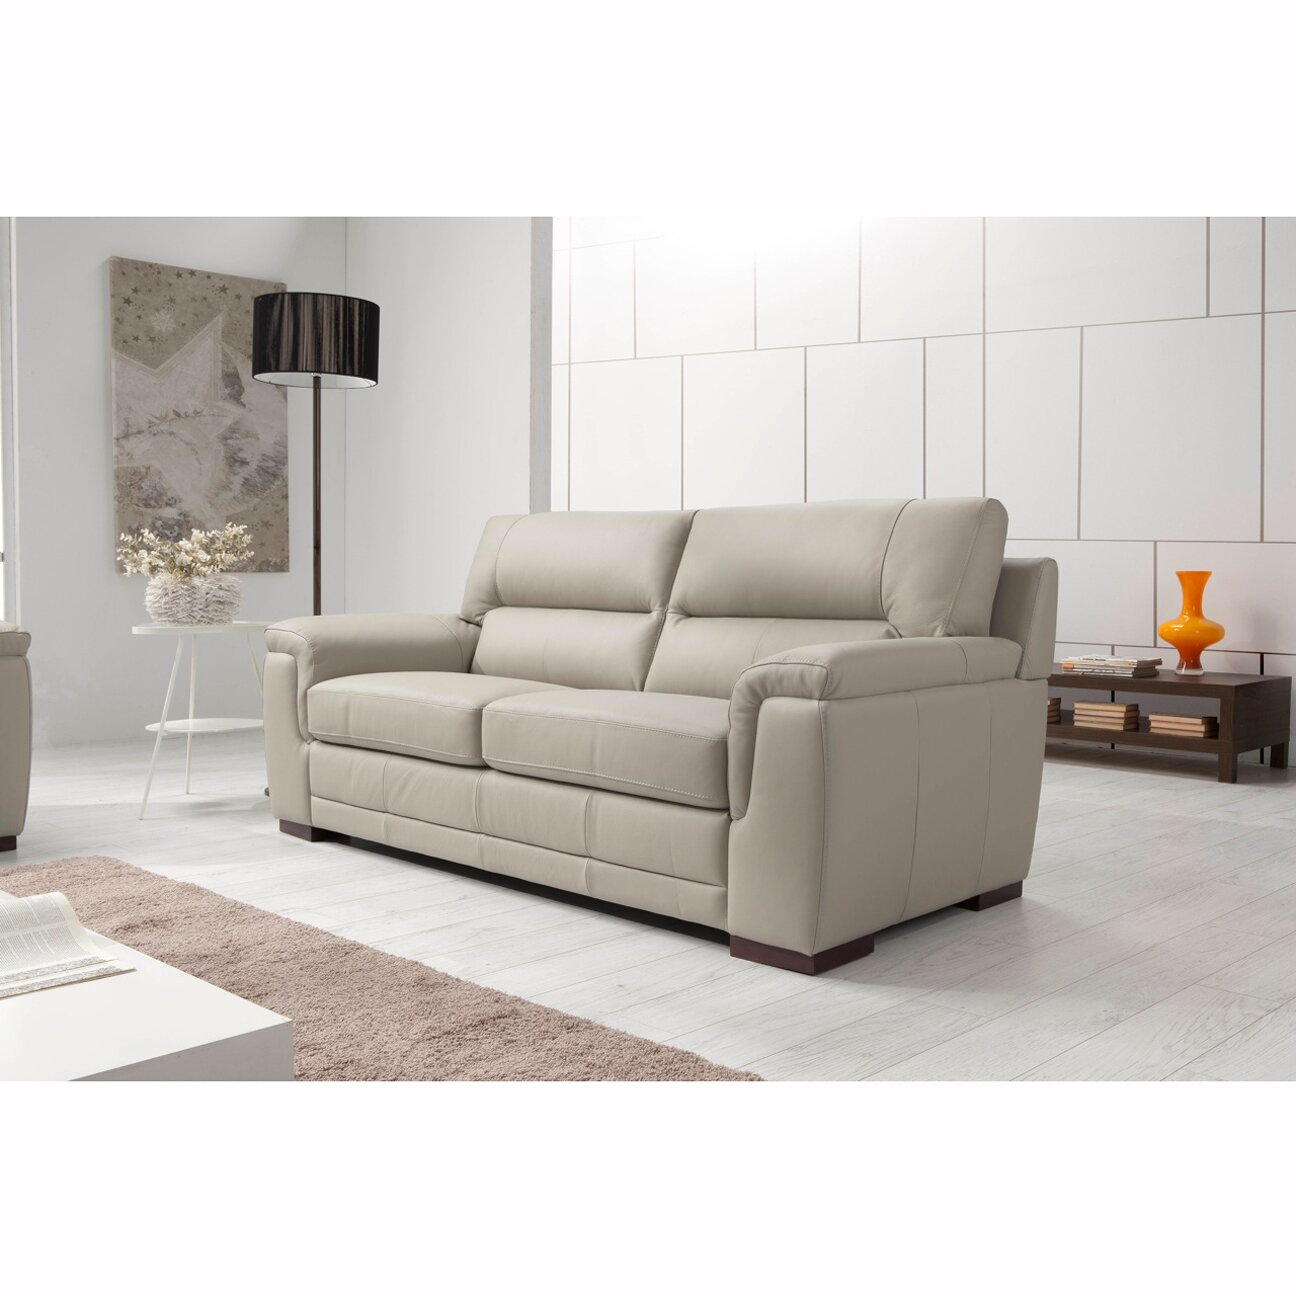 Albany brown leather sofa refil sofa for Albany sahara sectional sofa chaise